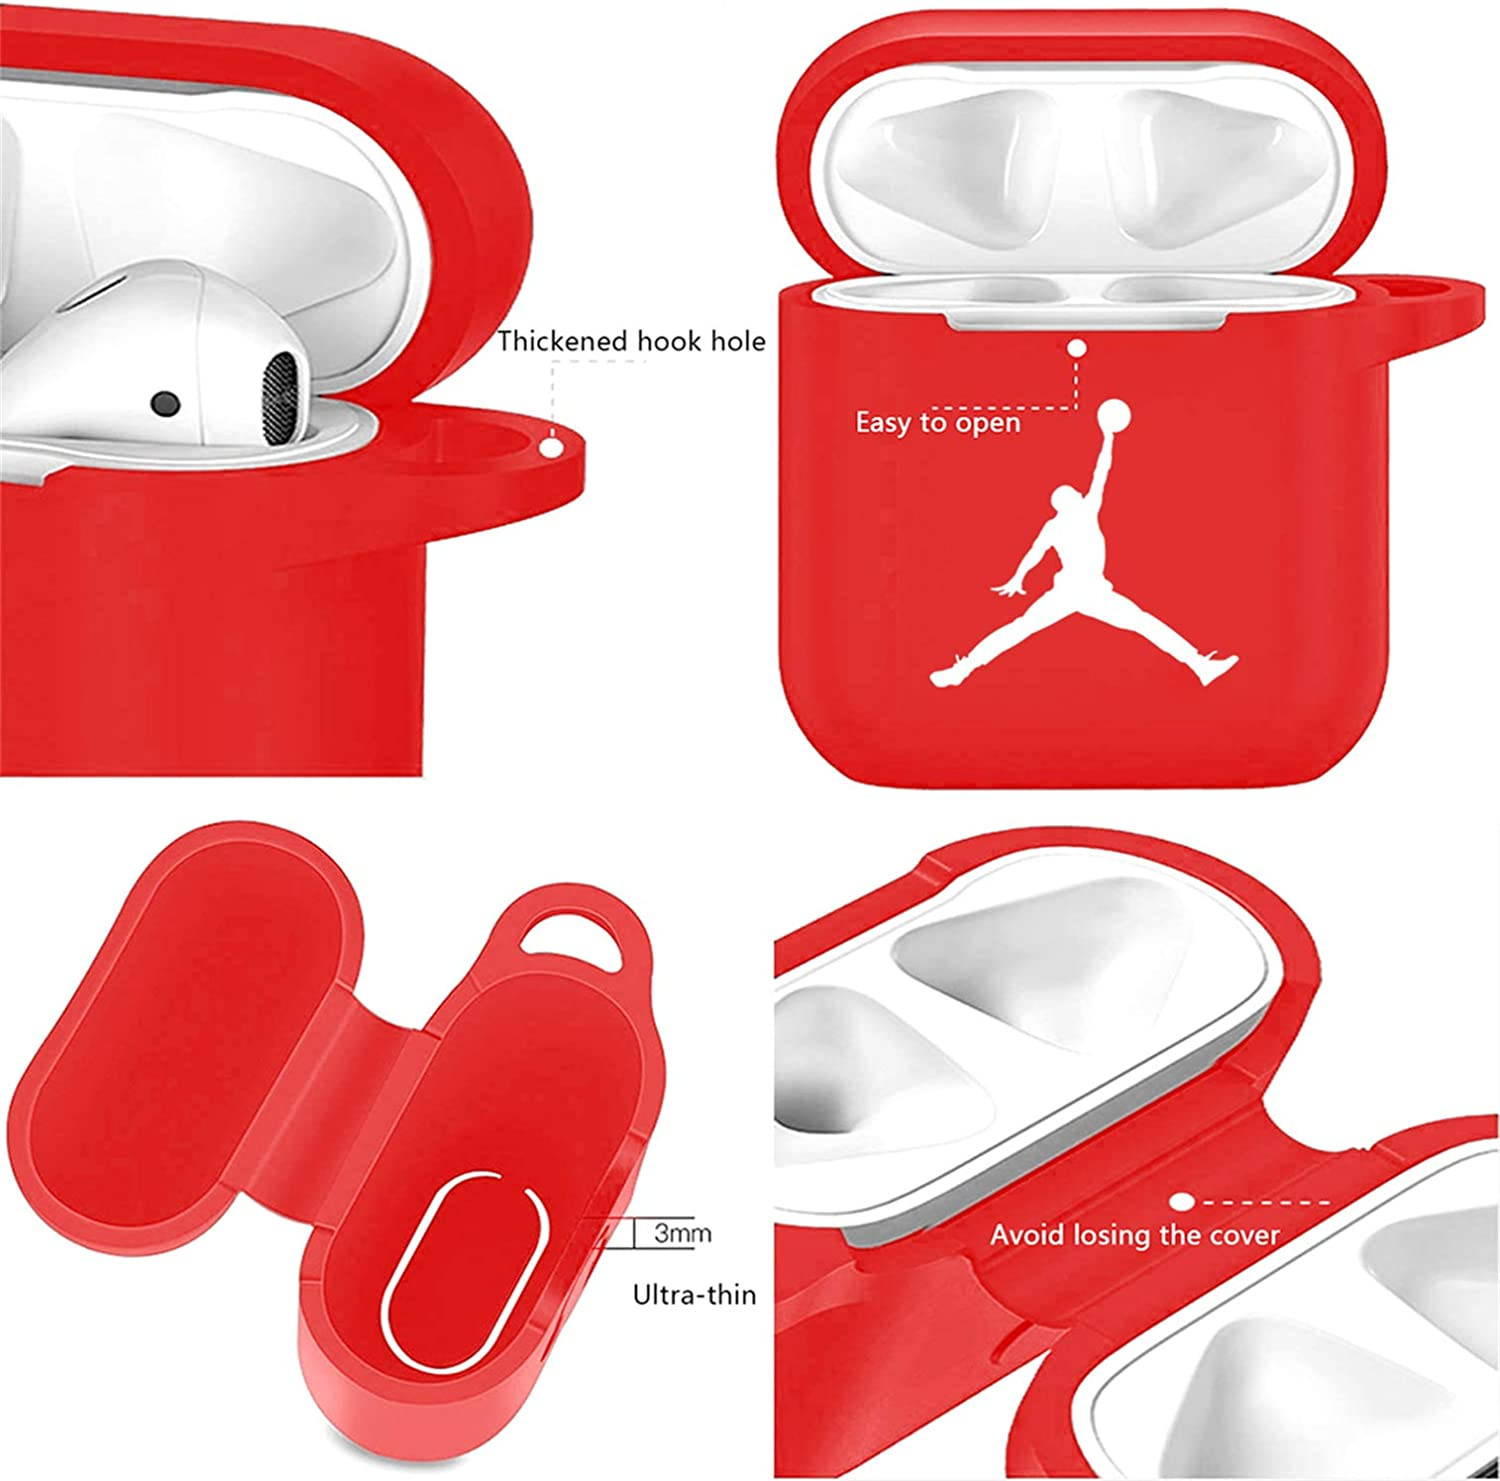 3D Luxury Fashion Sport Style Character Silicone Airpod Cover Stylish Designer Cases for Girls Kids Teens Boys Air pods Fun Cool Keychain Design Skin Red Adi Mulafnxal for Airpods 1/&2 Case